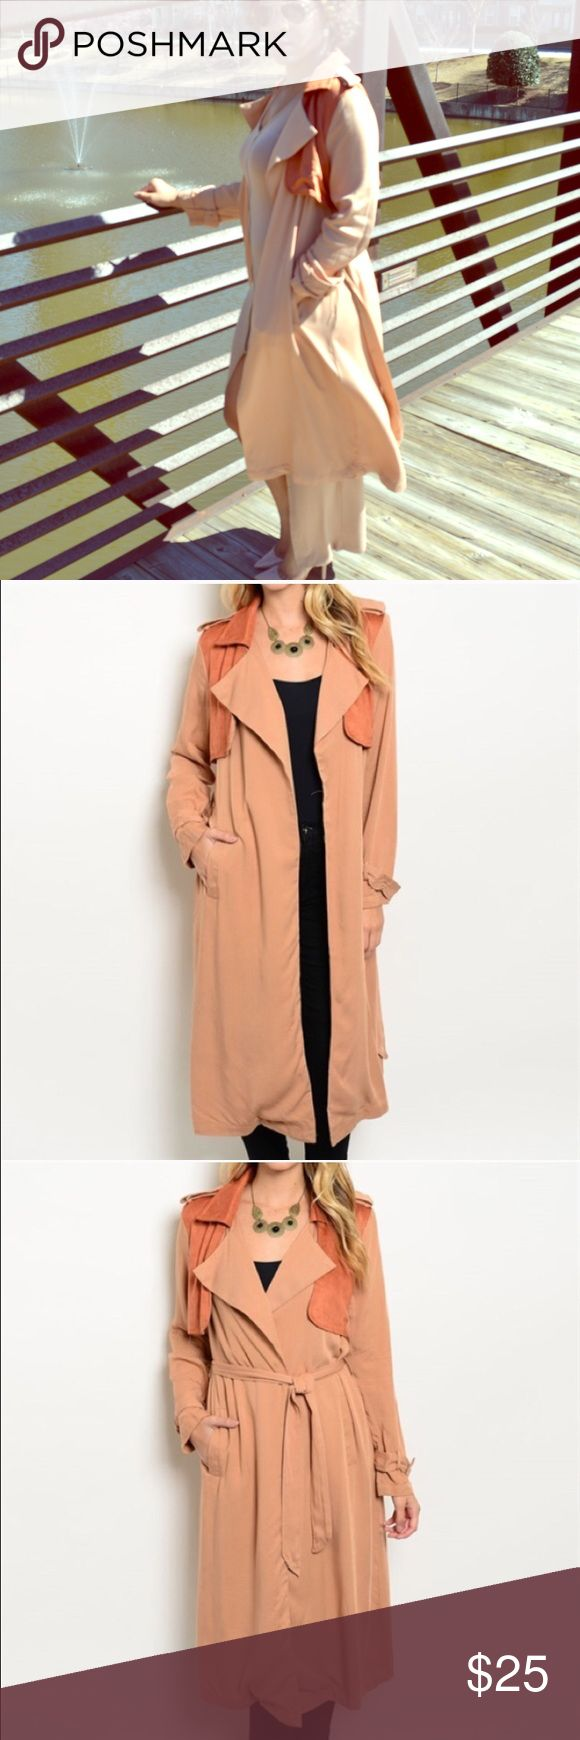 Lightweight Trench Coat Khaki and orange colored lightweight trench coat with knee length hem, hidden pockets, contrast colored panels and open front Jackets & Coats Trench Coats